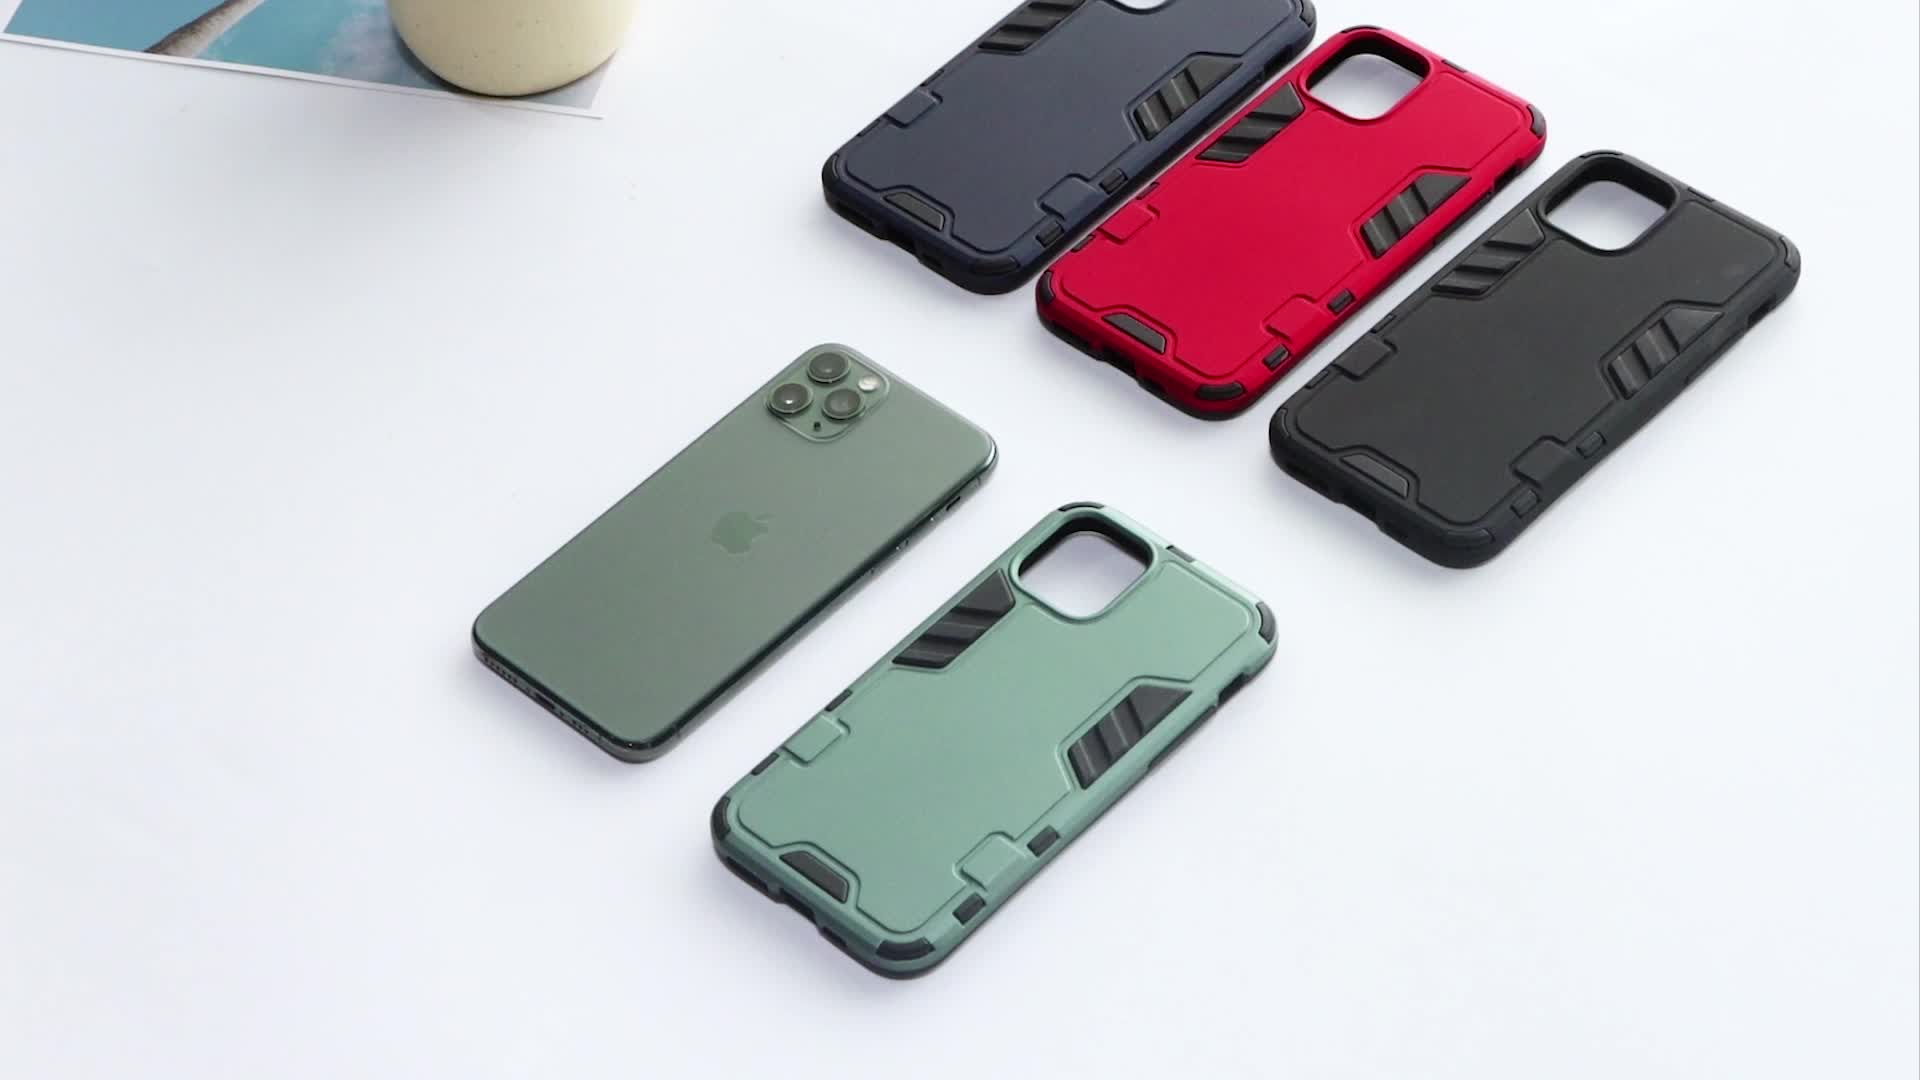 Wholesale Modern Stylish Shockproof Rubber Mobile Phone Cover For Iphone SE 2020 Case Phone